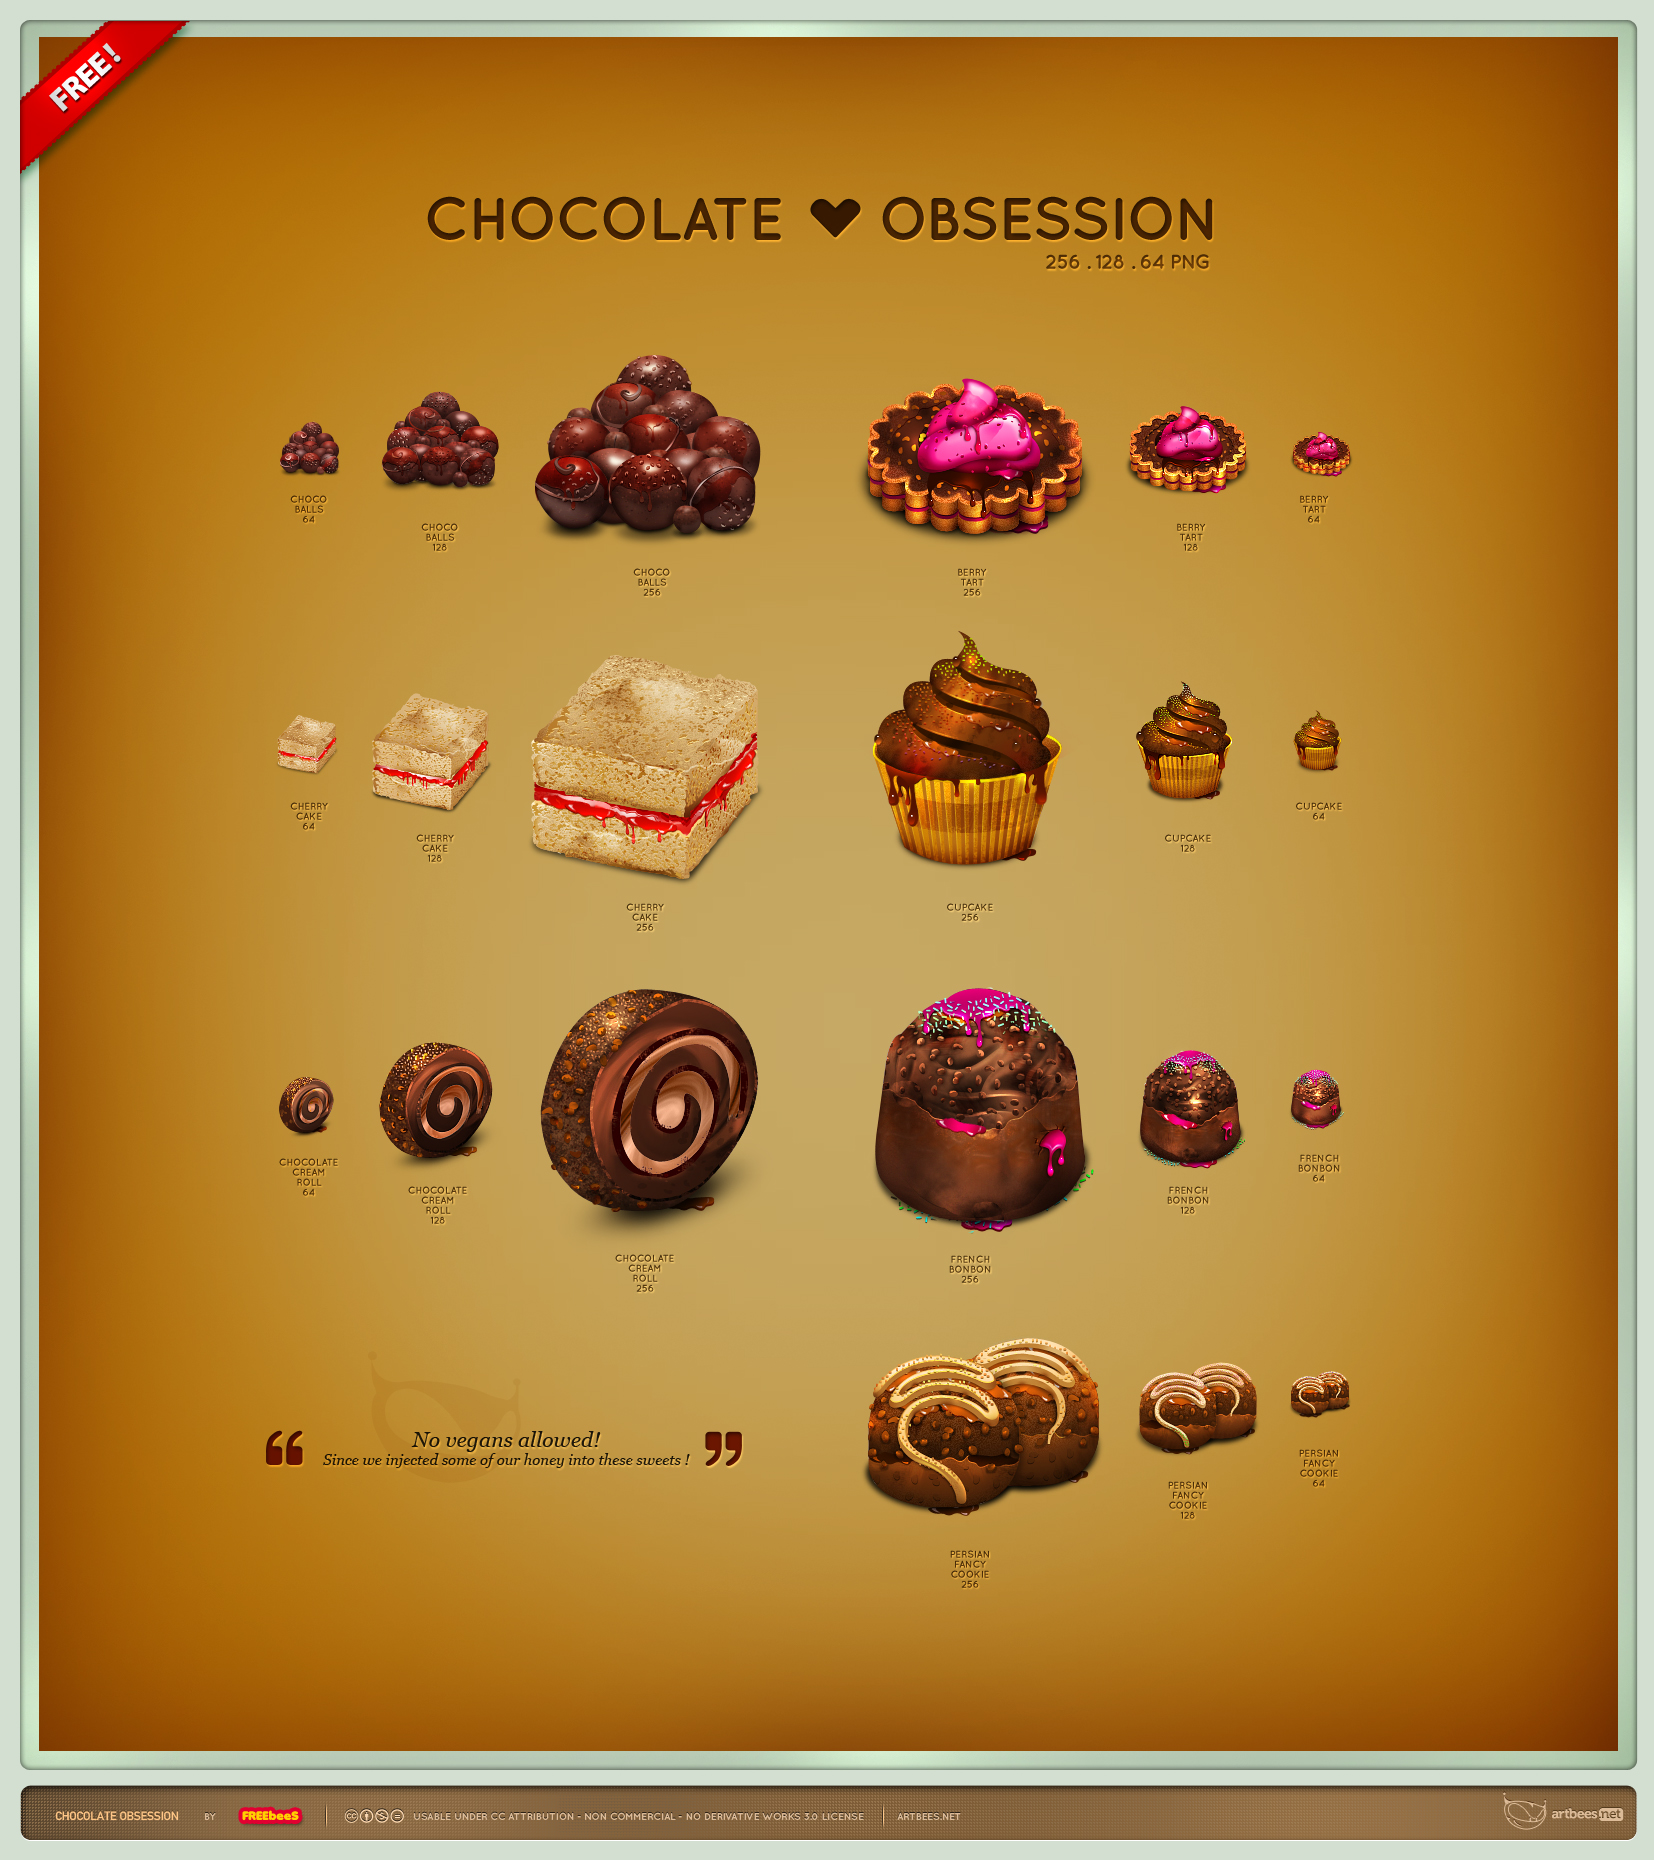 Exquisite confections icon